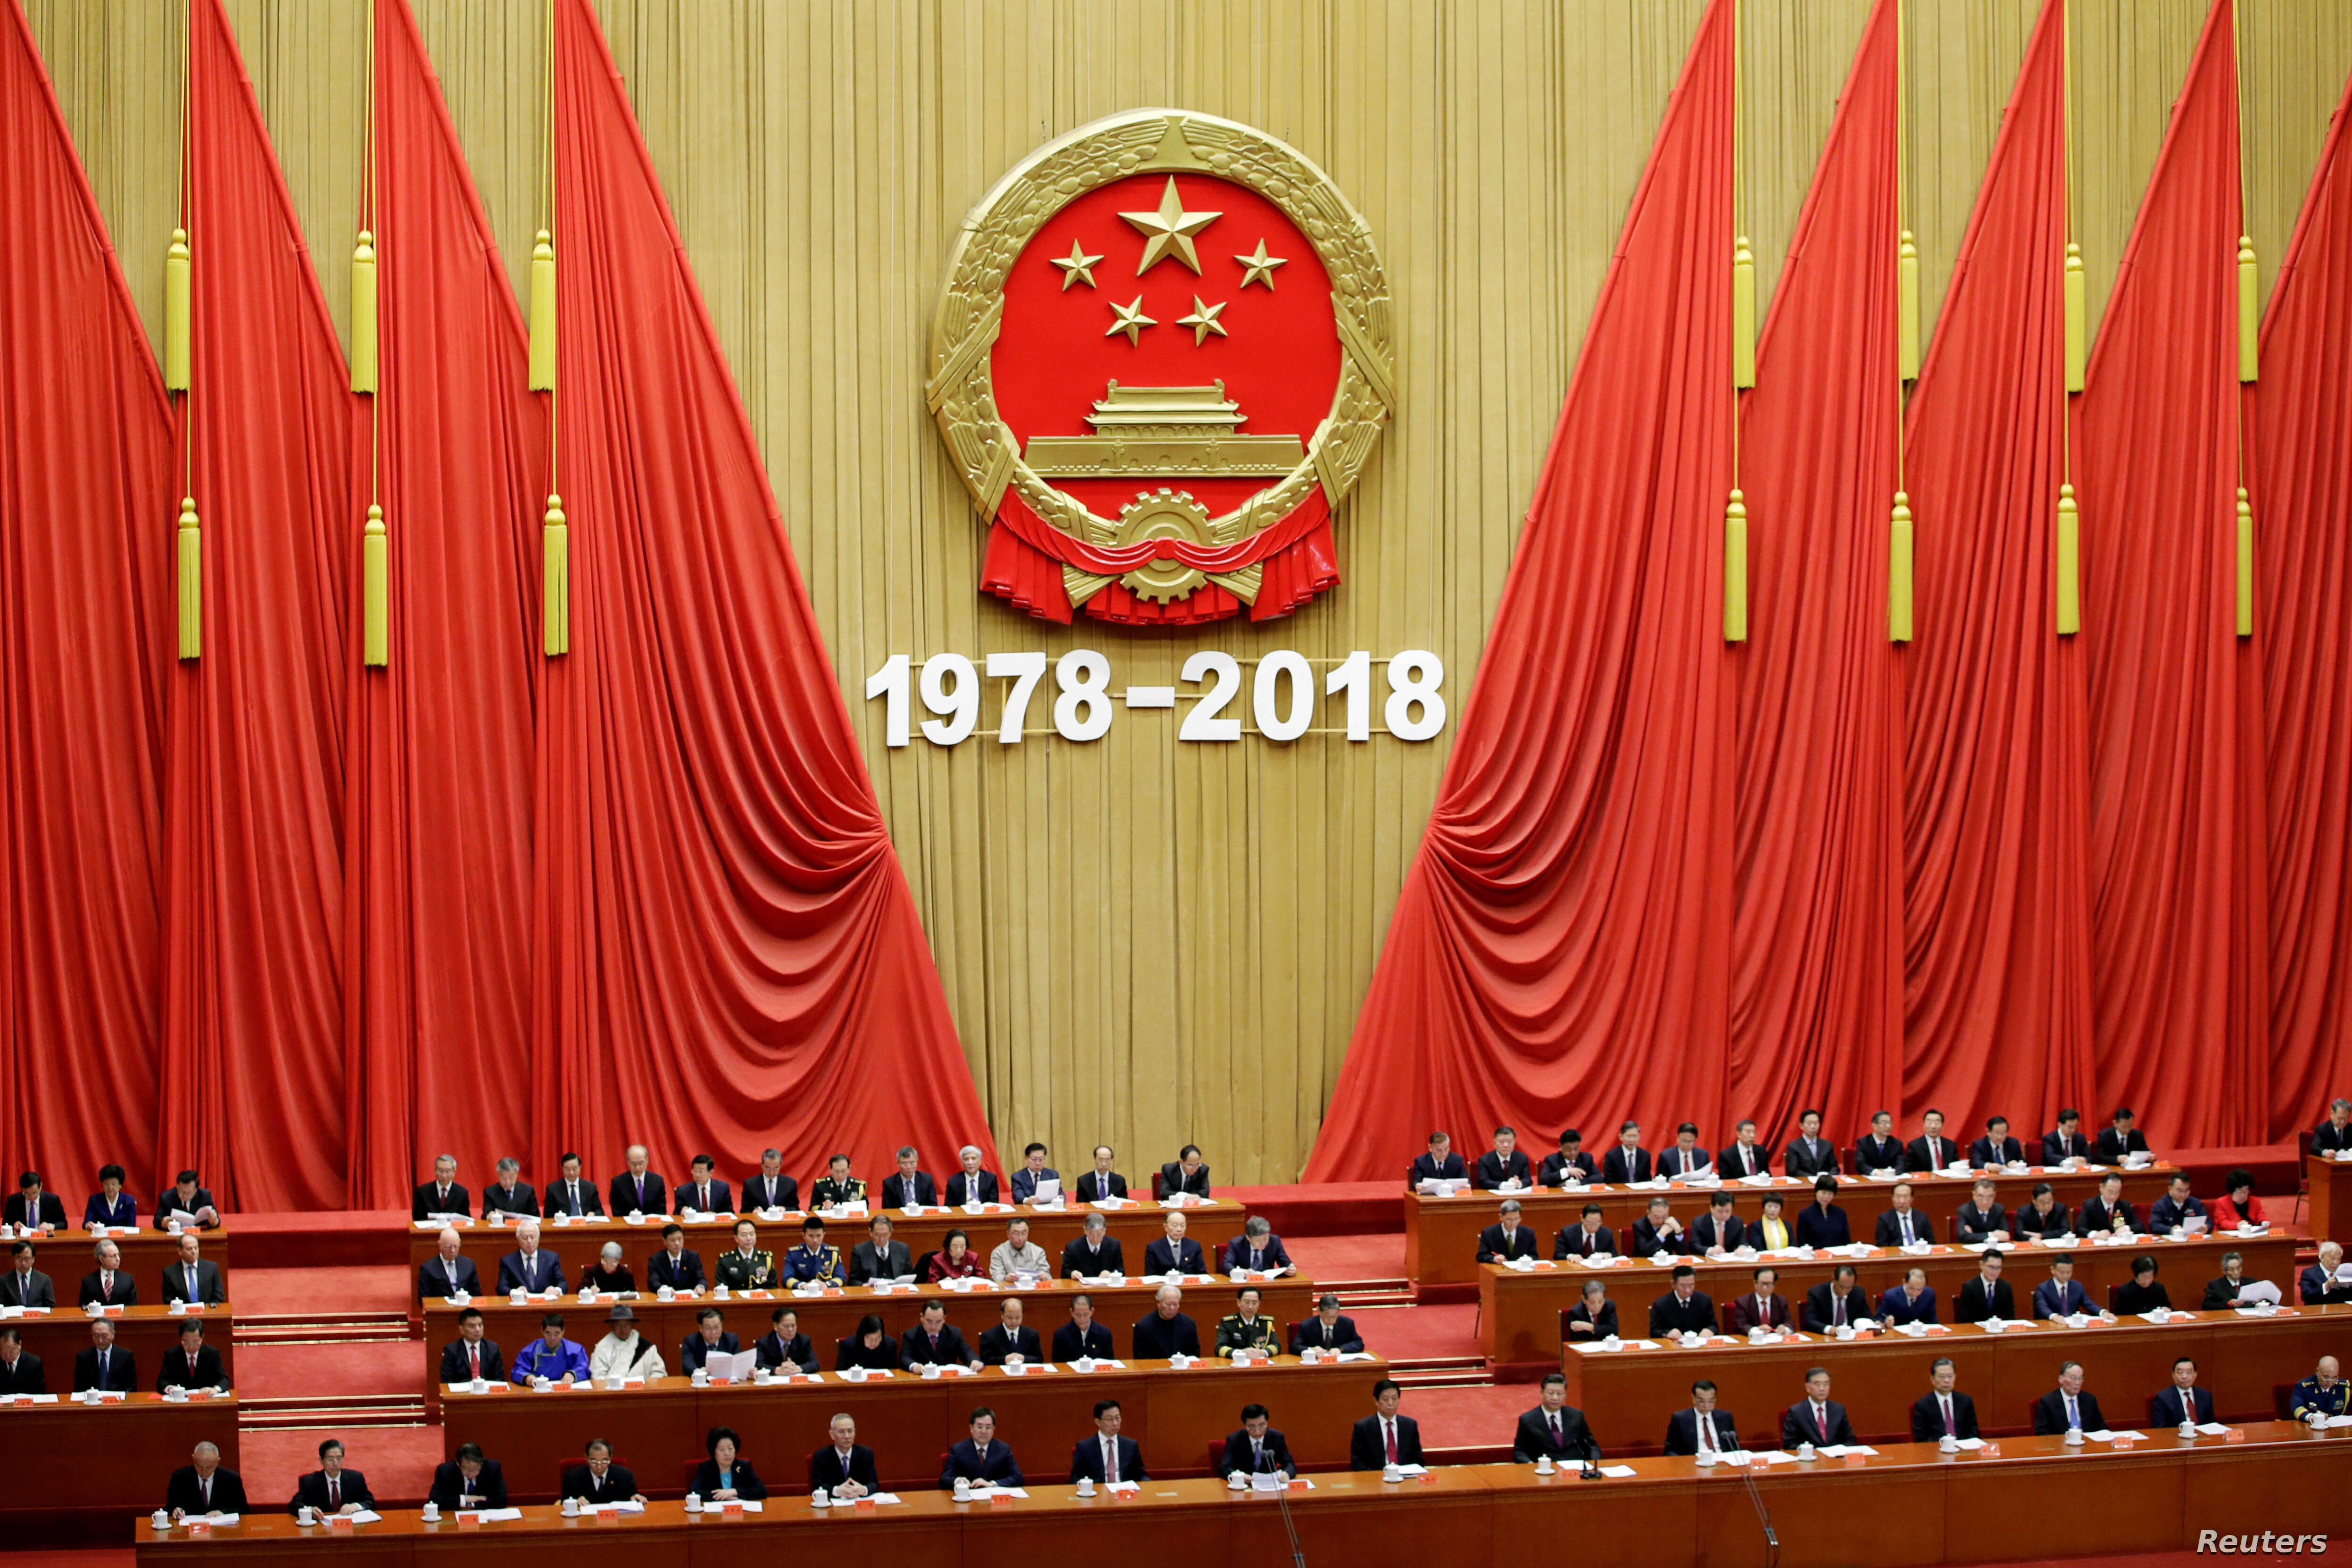 Chinese President Xi Jinping and others attend an event marking the 40th anniversary of China's reform and opening up at the Great Hall of the People in Beijing, China, Dec. 18, 2018.